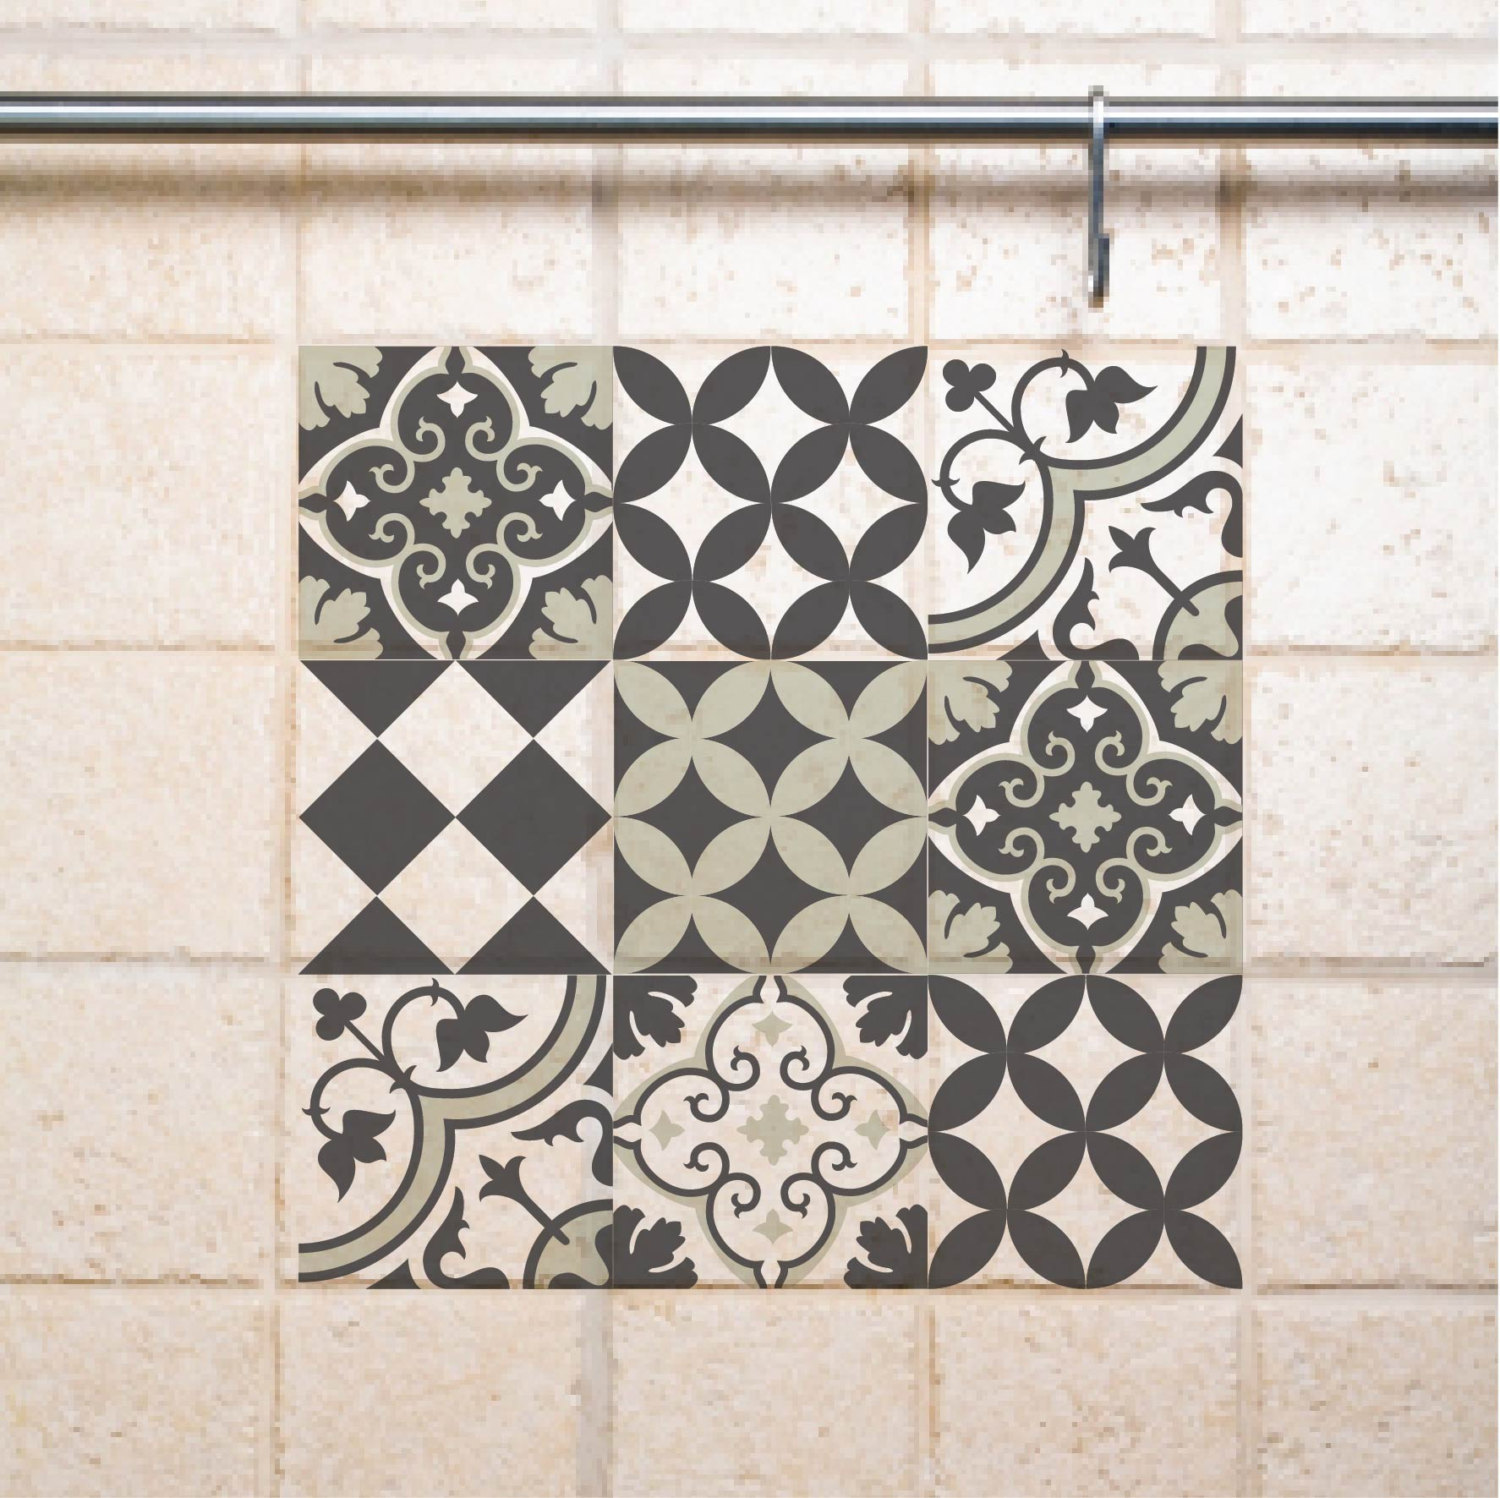 mix-tile-decals-kitchenbathroom-tiles-vinyl-floor-tiles-free-shipping-design-312-5897aec82.jpg